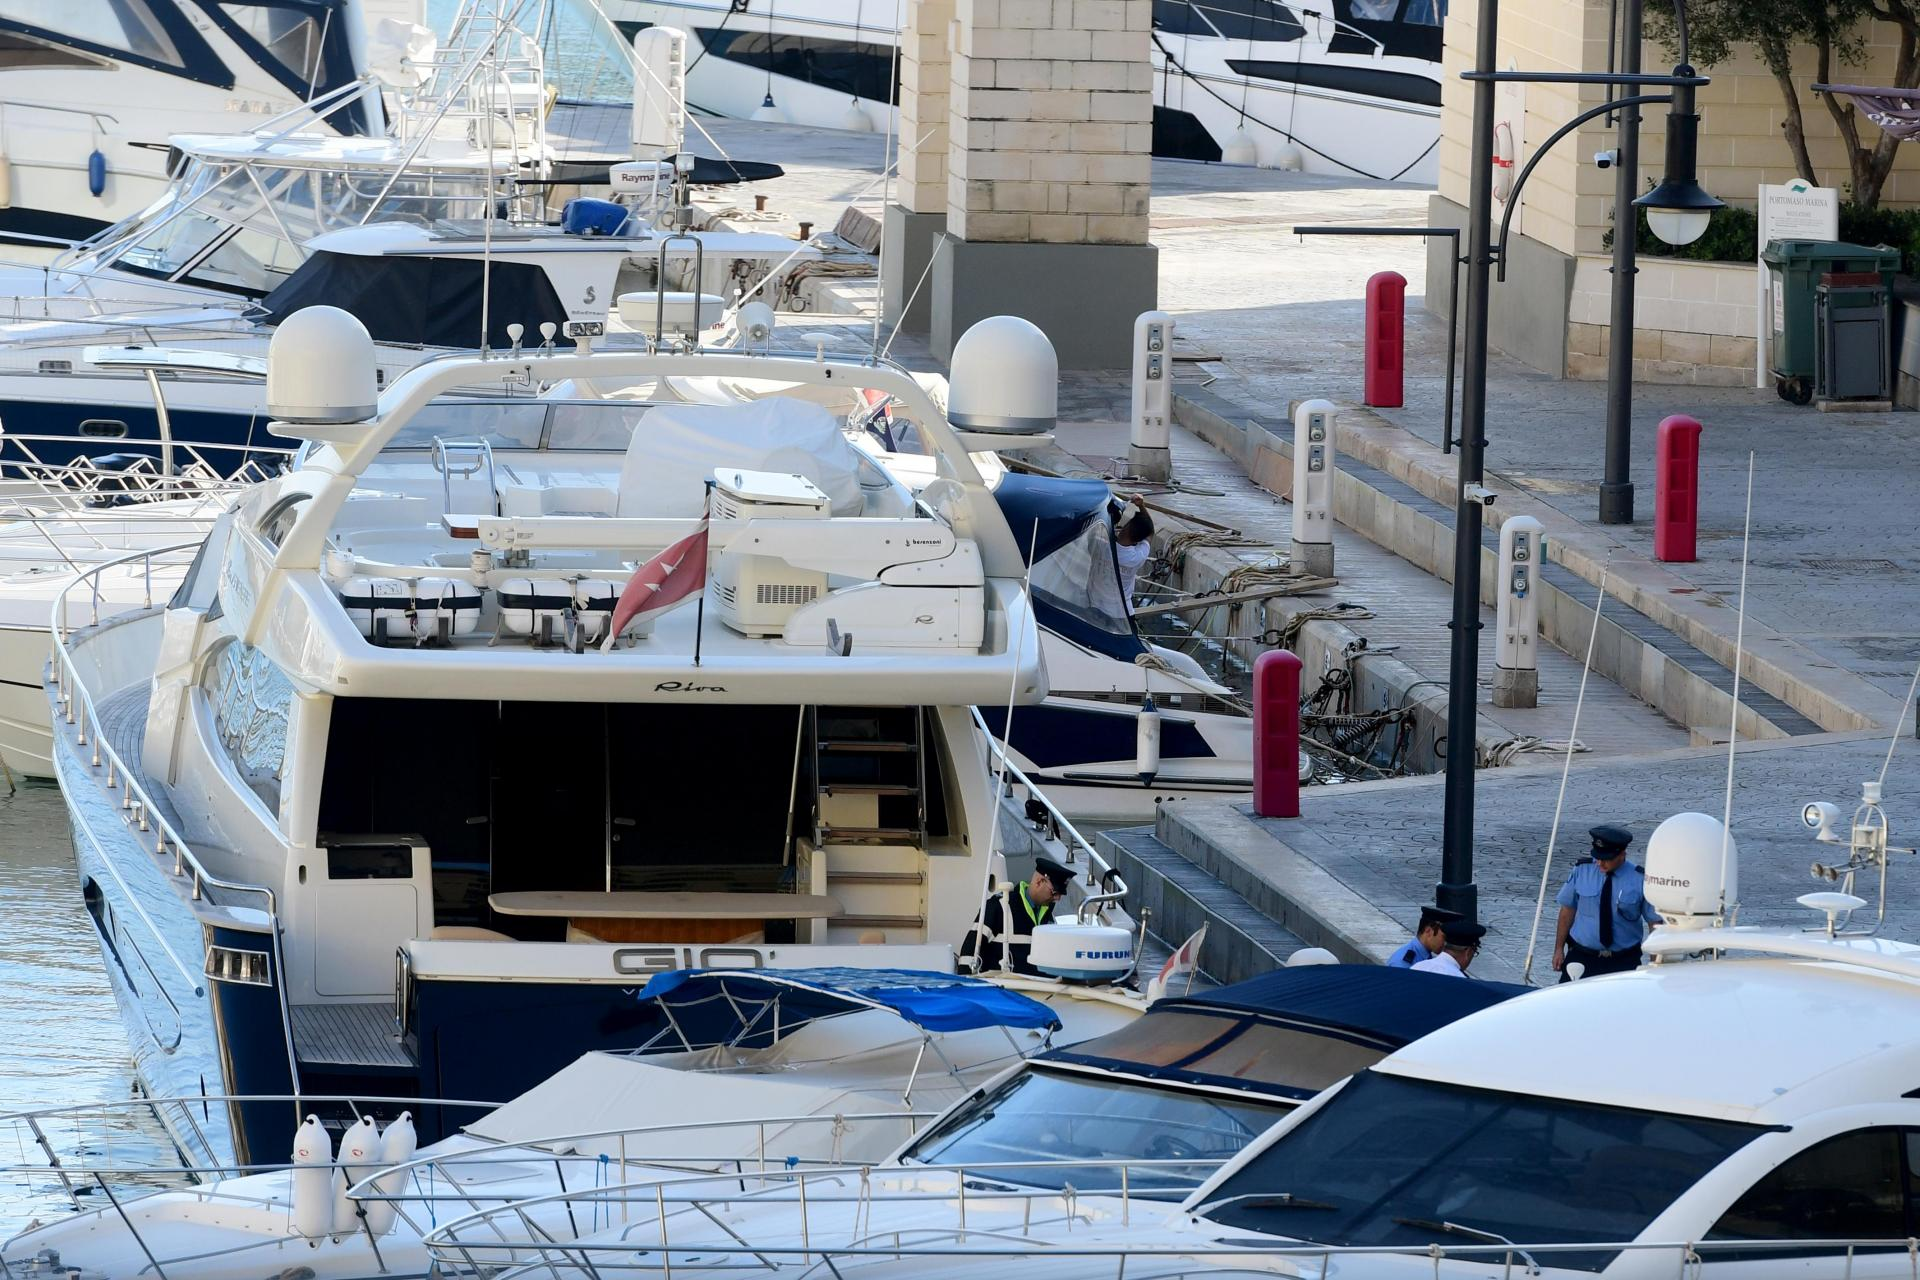 Yorgen Fenech was arrested on the yacht he shares with his family, the Gio on Wednesday. Photo: Jonathan Borg